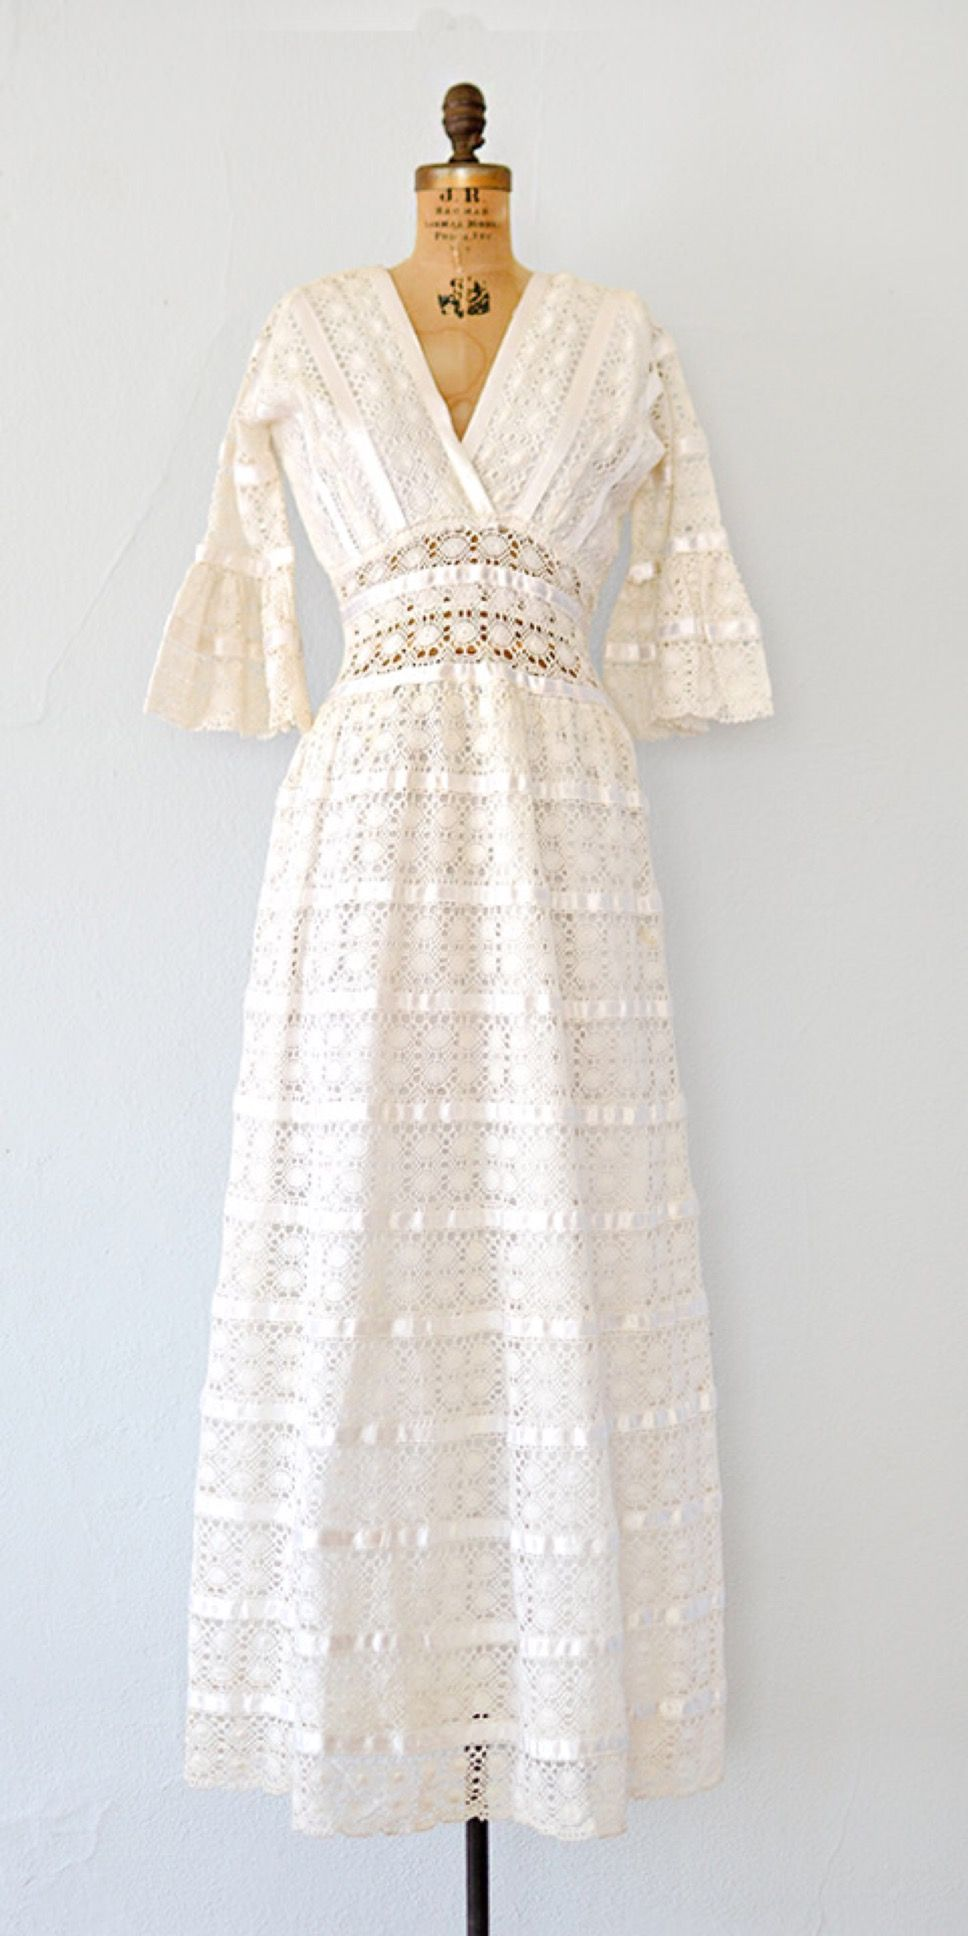 Vintage 1960s Mexican Wedding Dress Lace 60s Maxi Boho Dress Bohowedding Lacedress Vintage Dresses 1960s Mexican Wedding Dress Boho Maxi Dress